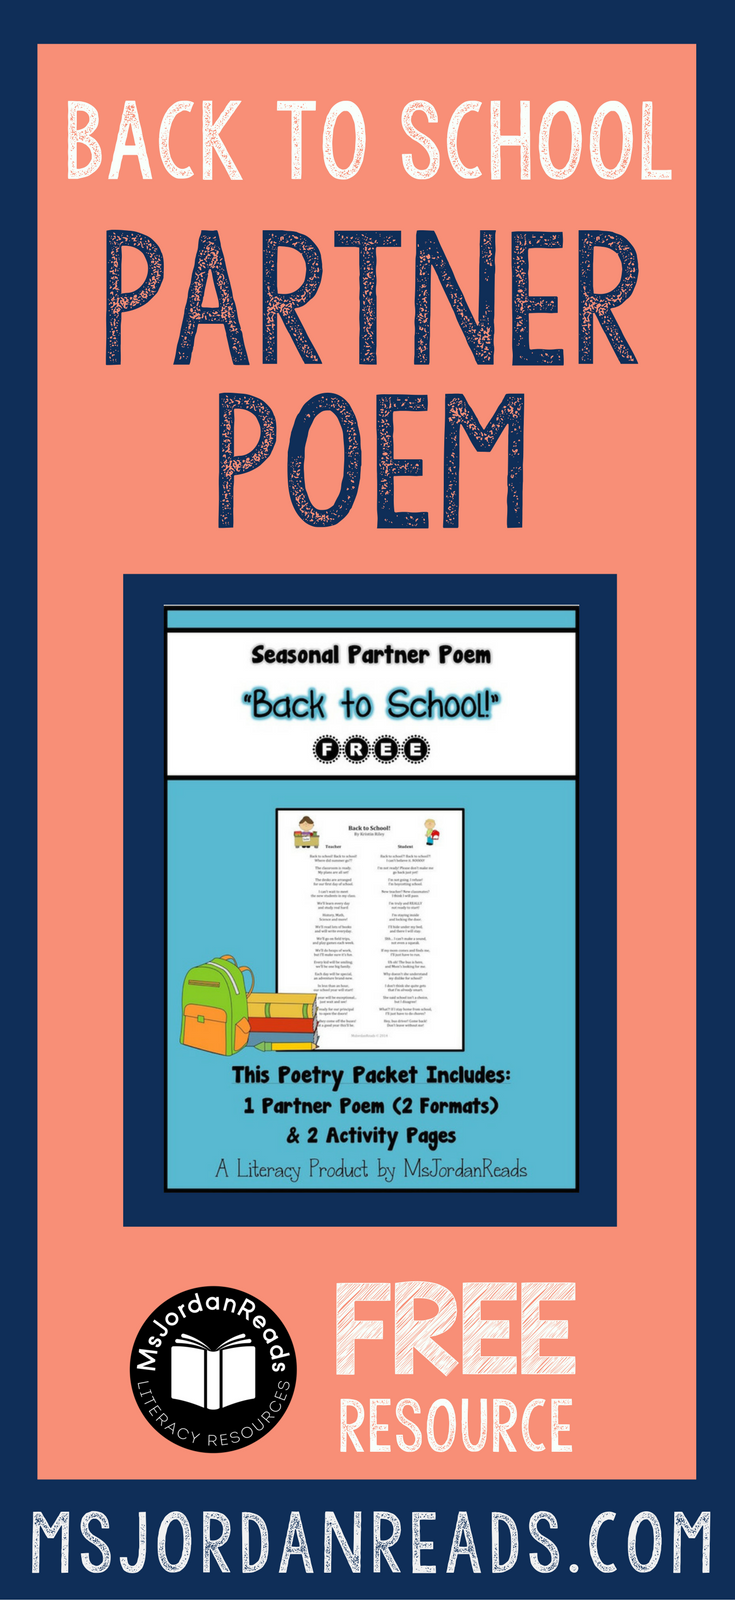 FREE Back to School Partner Poem for fluency! | Interactive, back-and-forth style poem for building fluency and bringing back to school poetry fun into your classroom. This poem for two voices is readers theater style and perfect for practicing expression.